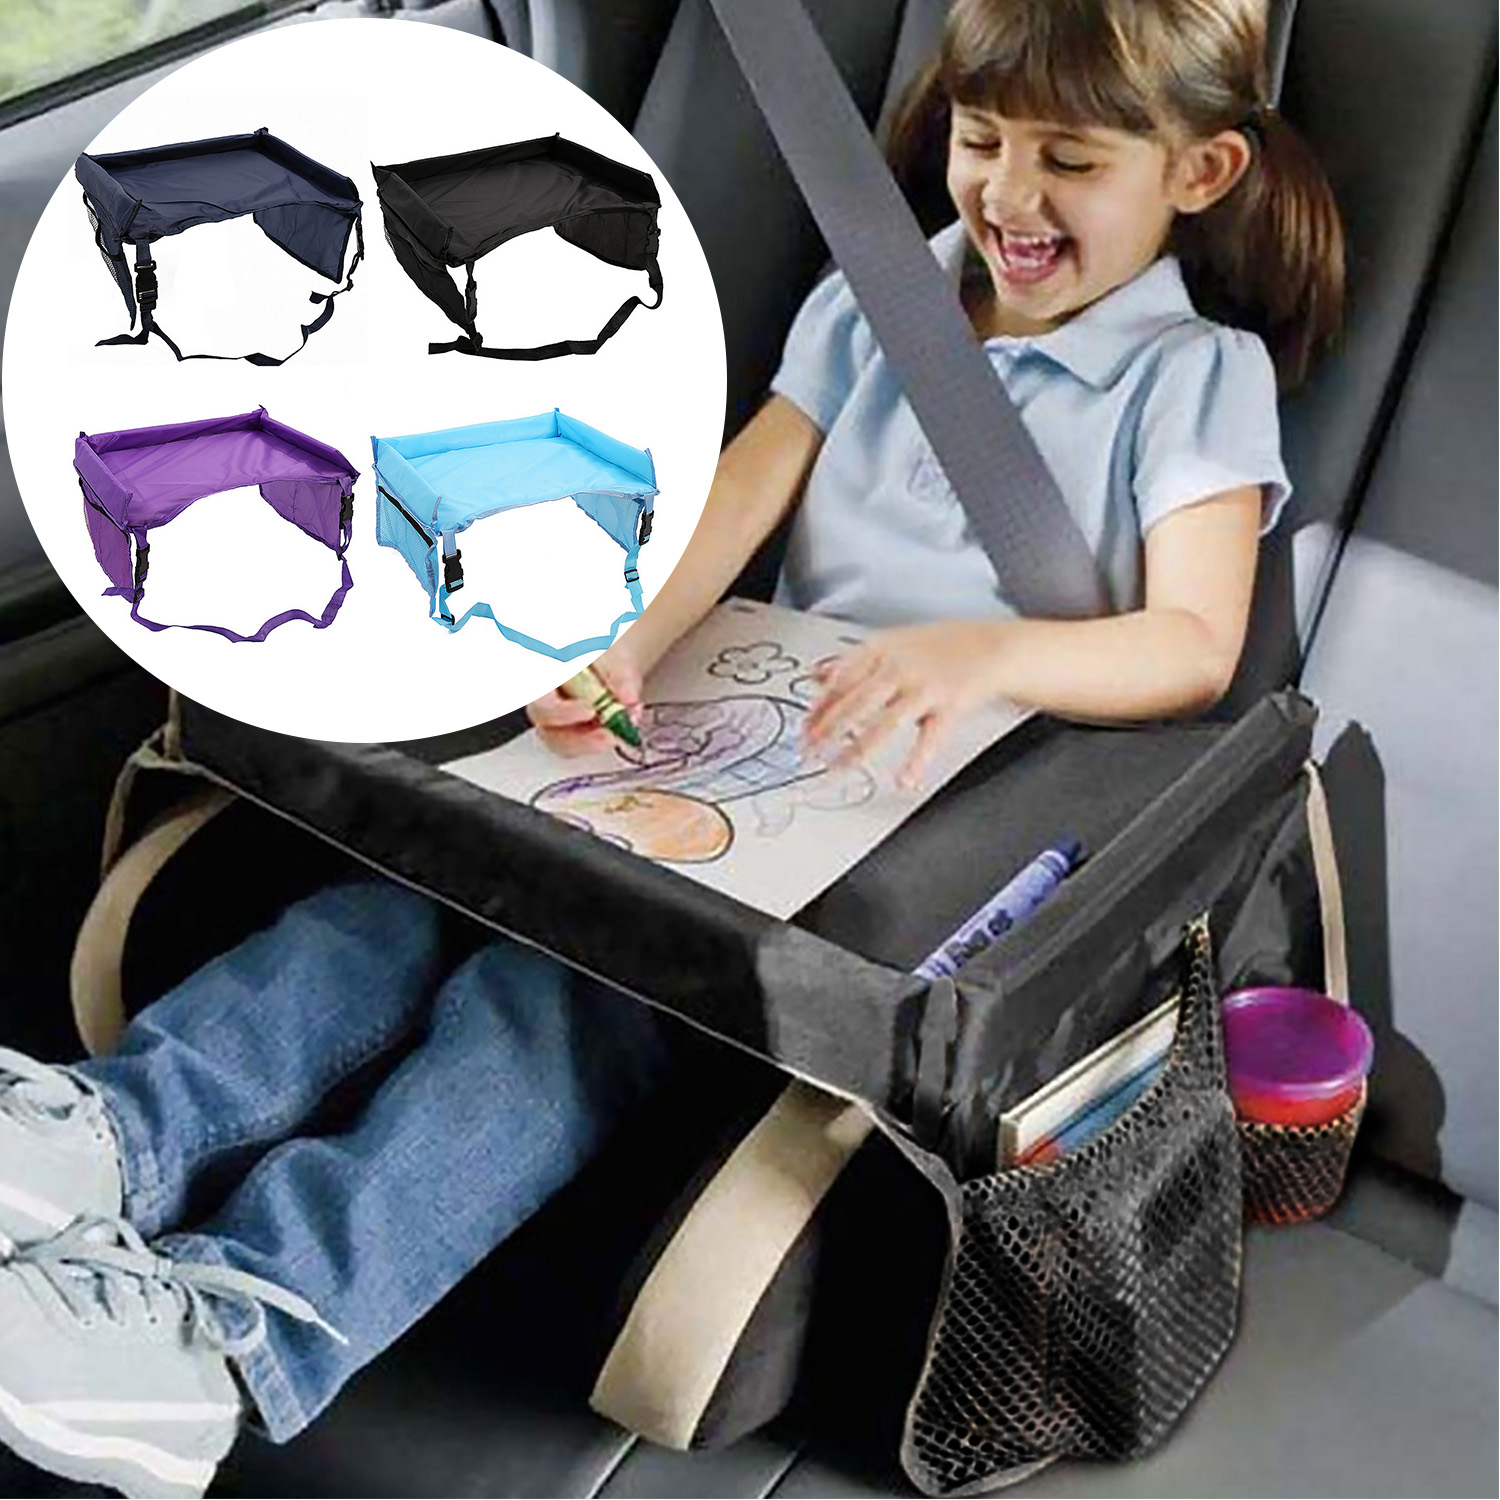 Portable Toddler Travel Activity Desk Play Tray Car Seat Stroller Accessories For Children Drawing Playing